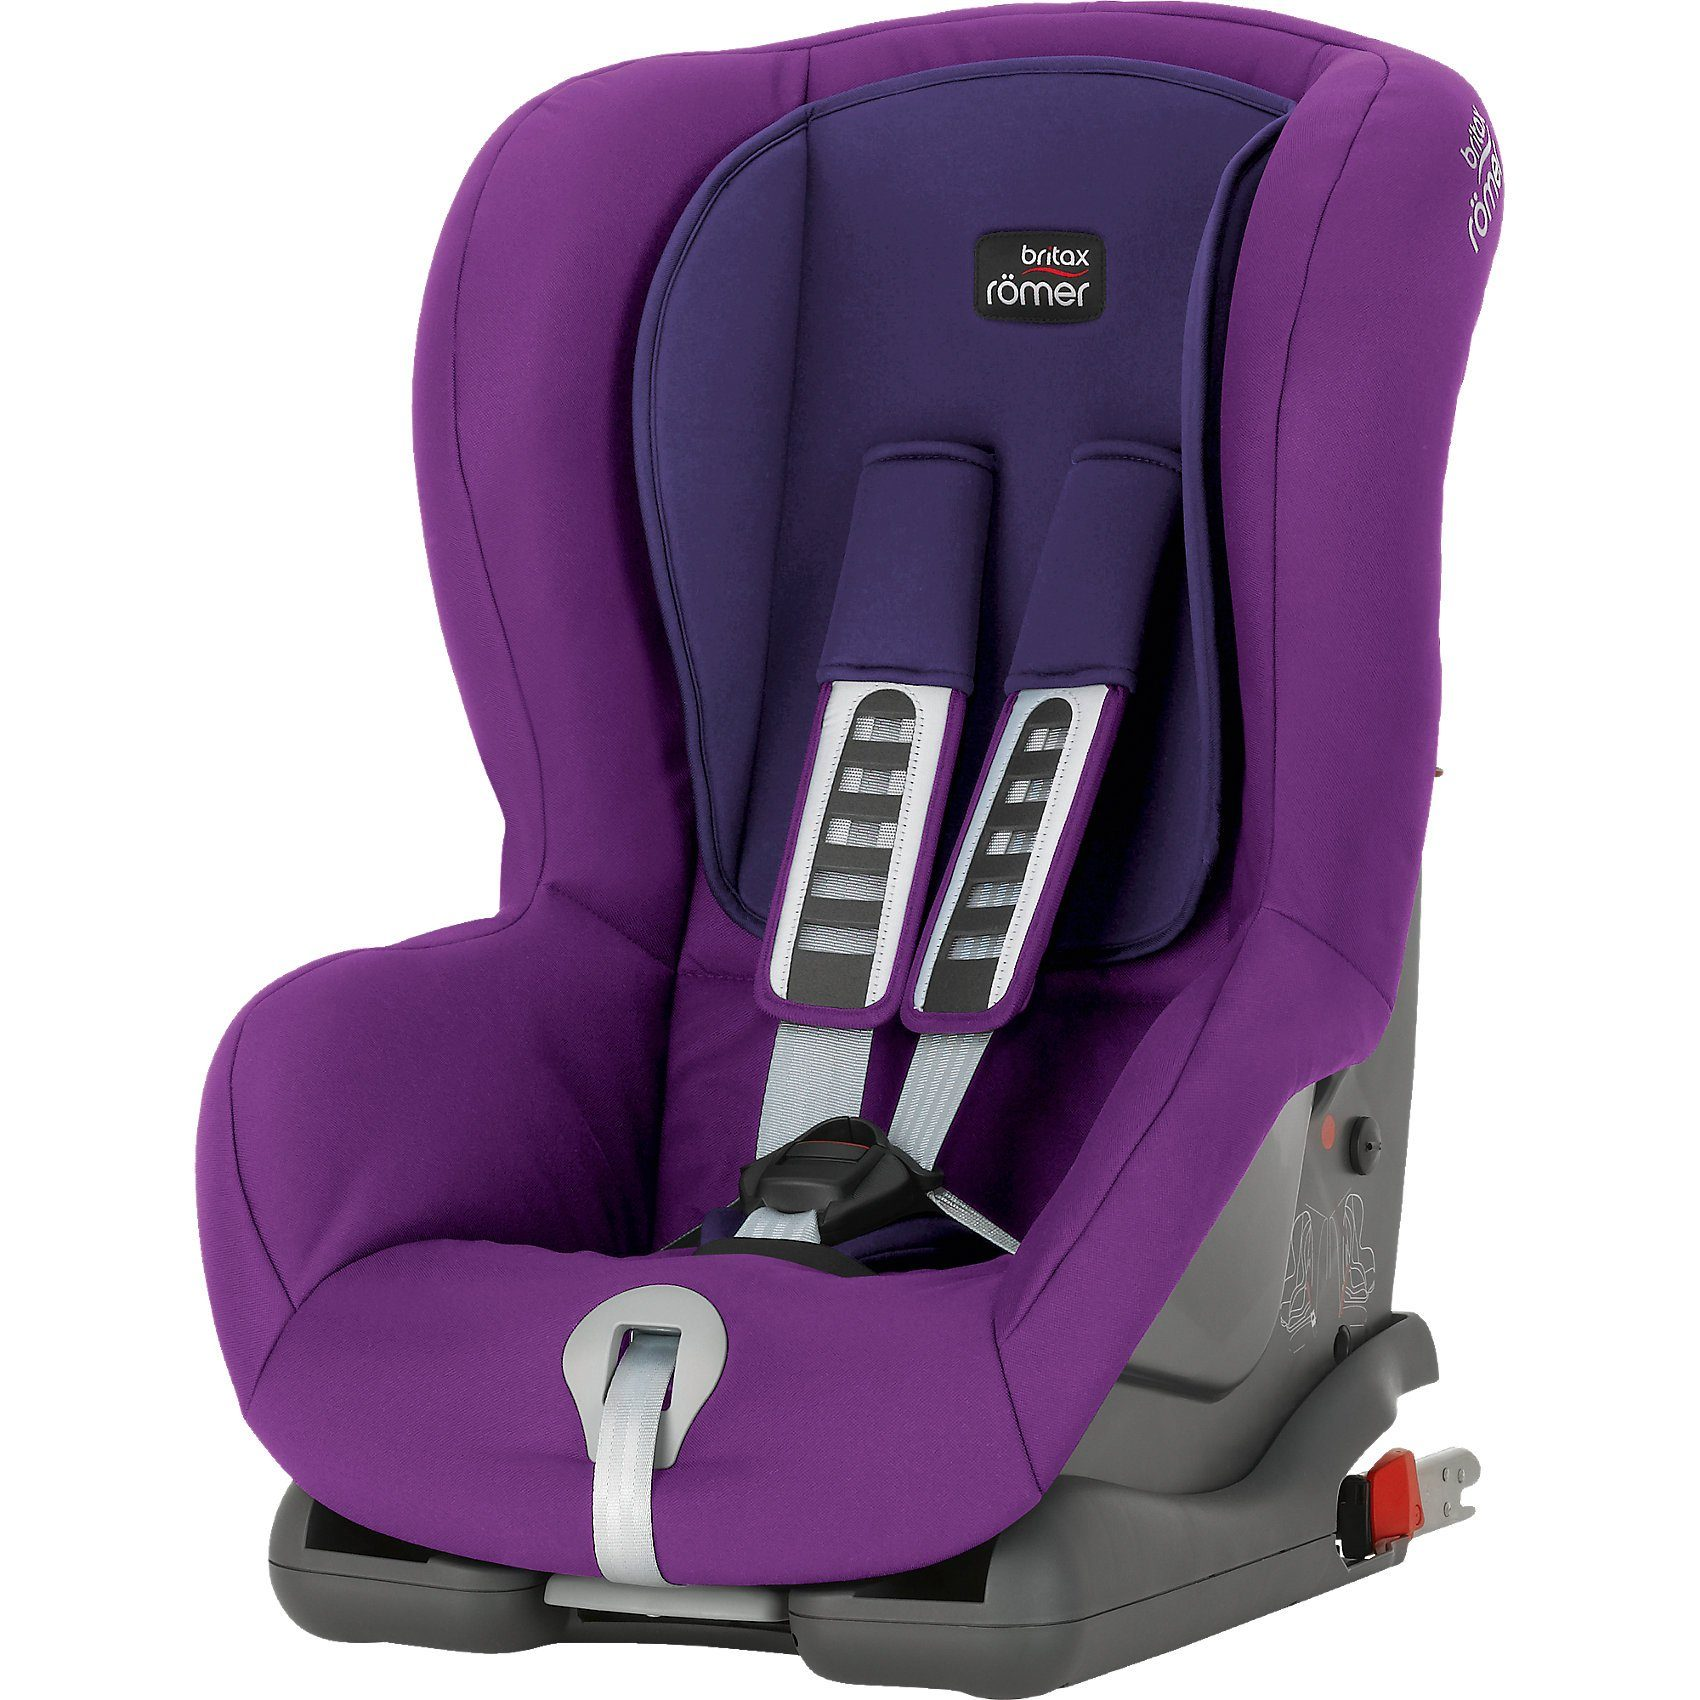 Britax Römer Auto-Kindersitz Duo Plus, Mineral Purple, 2016